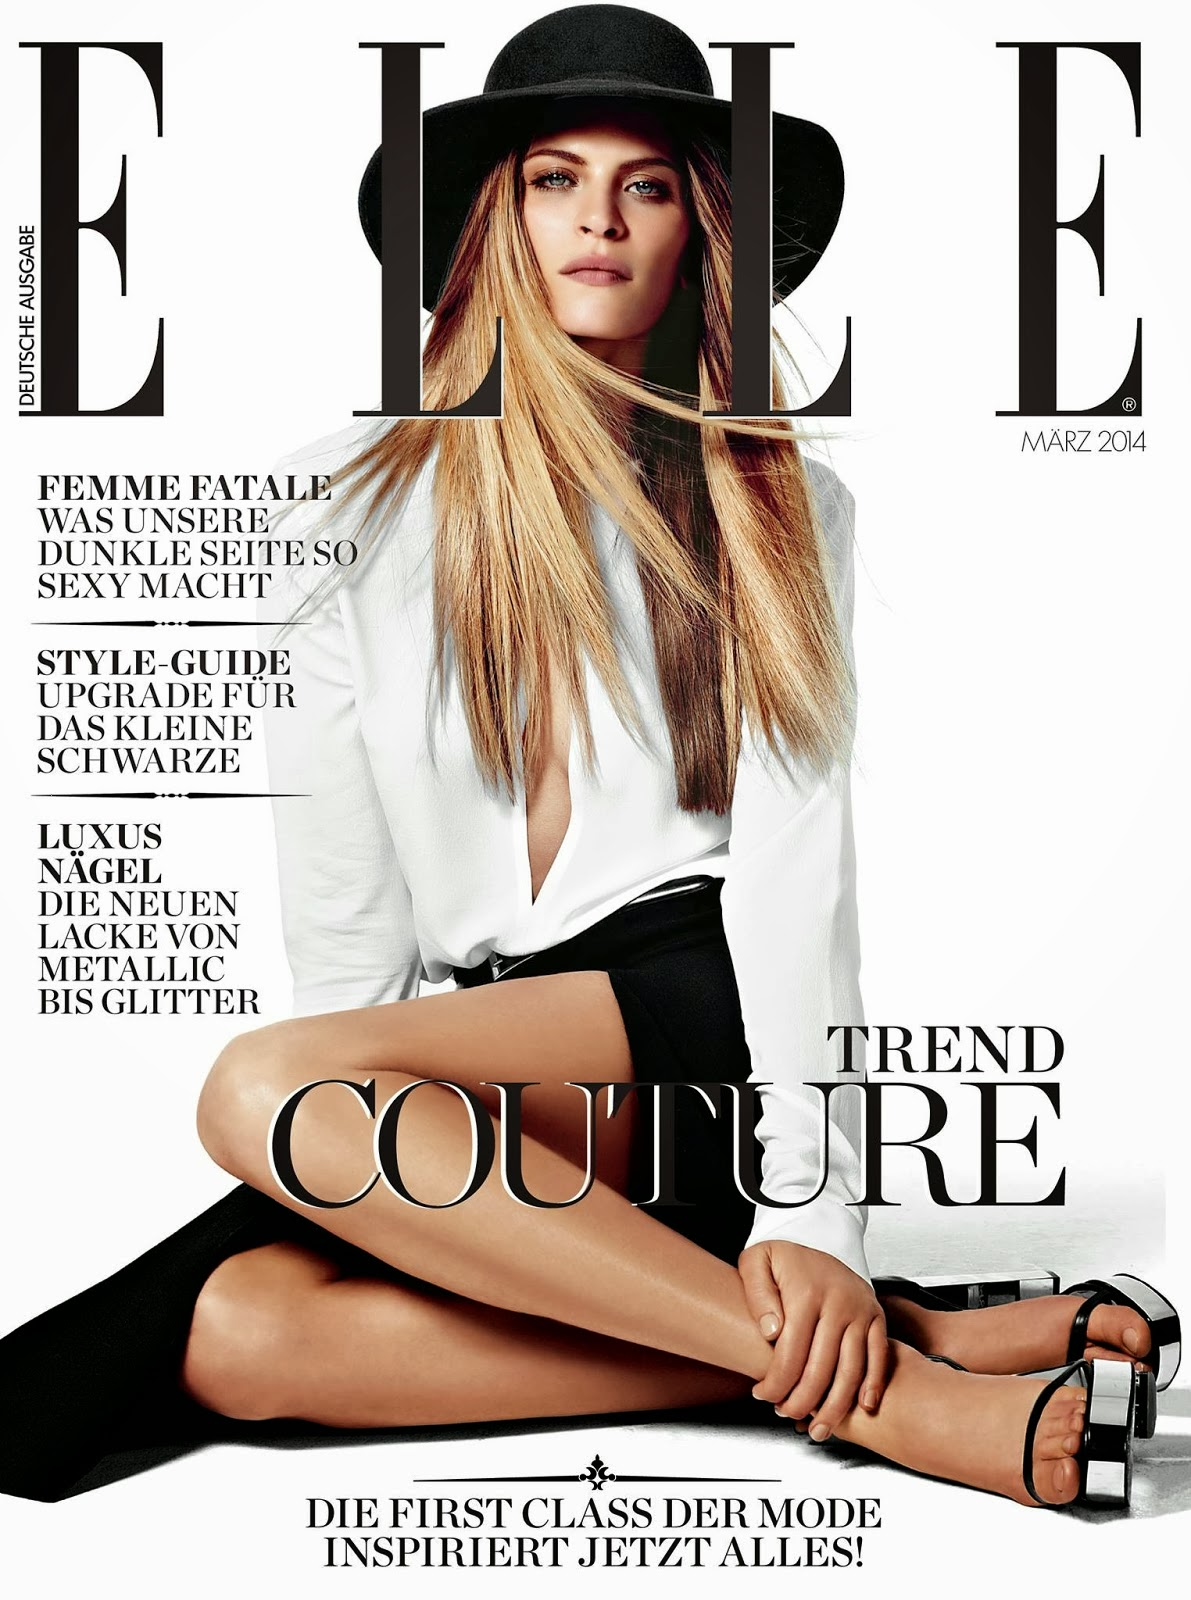 Frankie Rayder Photos from Elle Germany Magazine Cover March 2014 HQ Scans